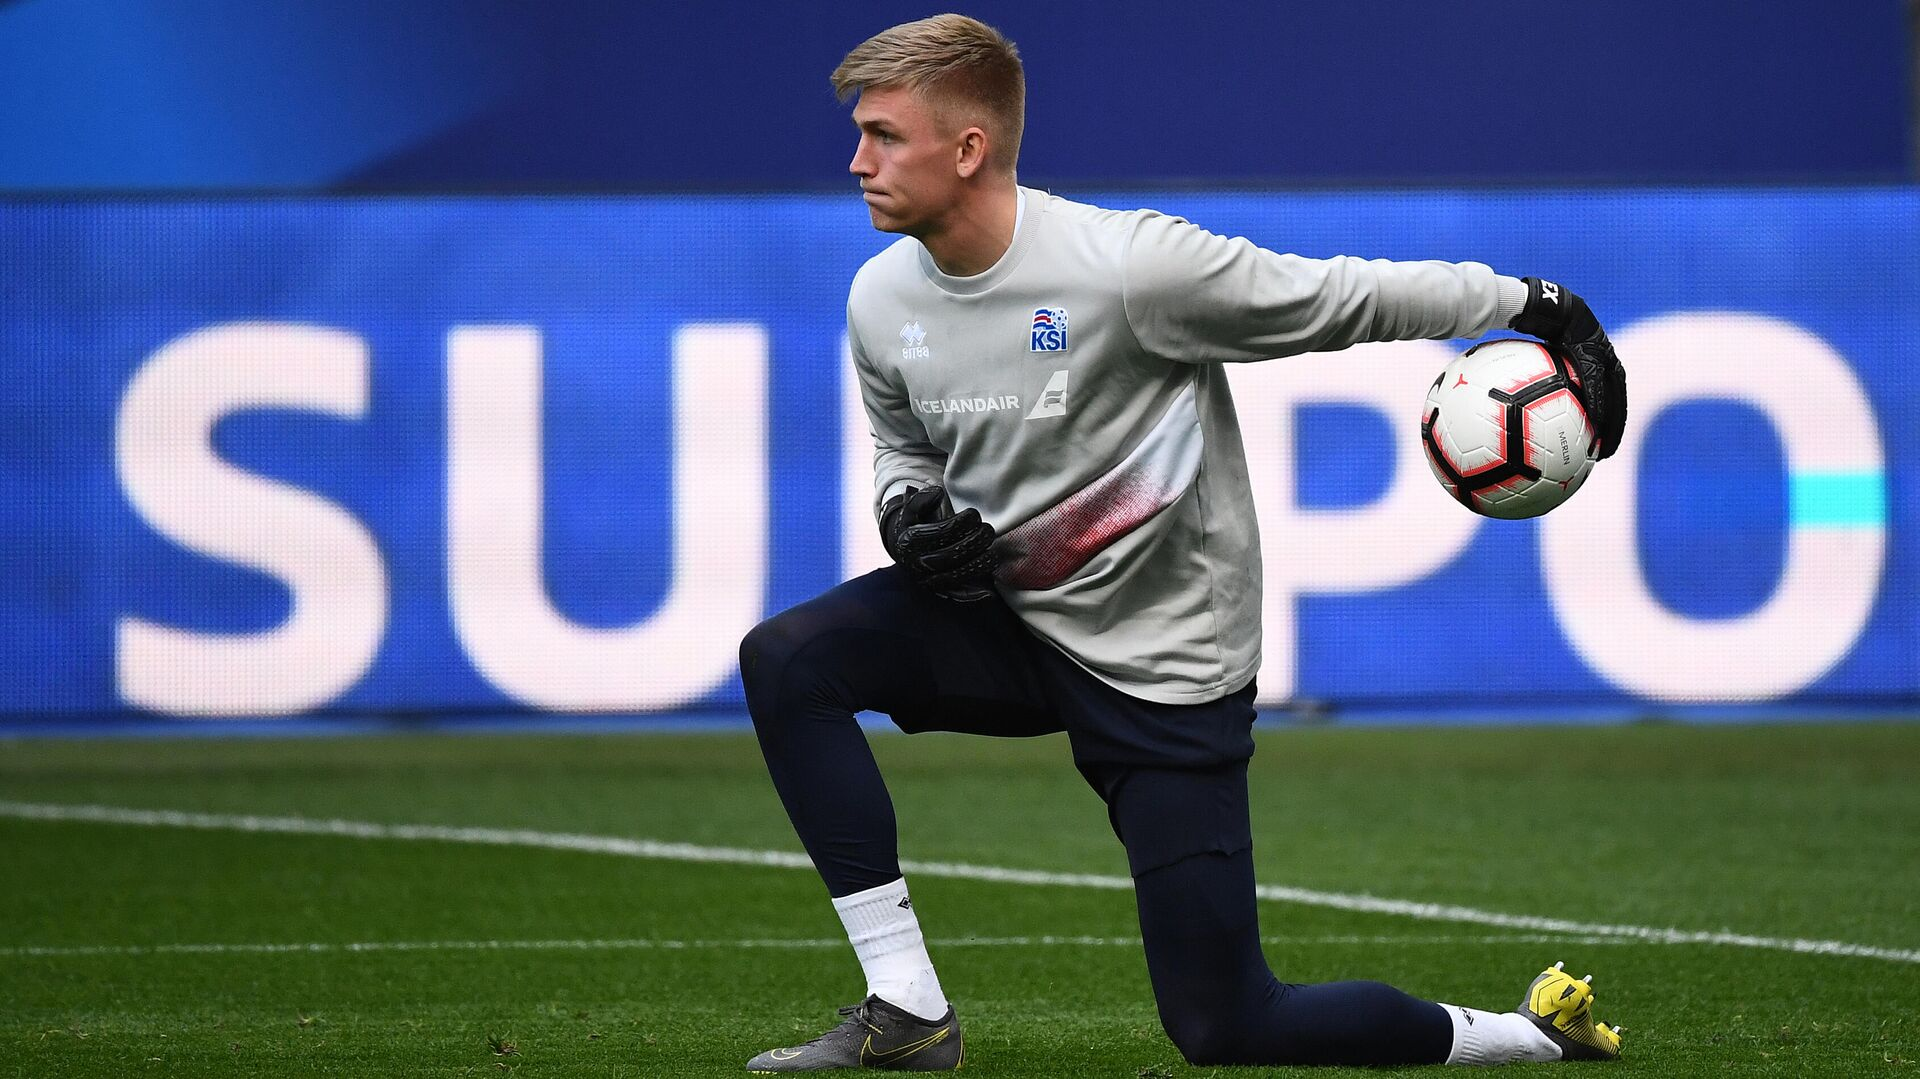 Iceland's goalkeeper Runar Alex Runarsson plays the ball during a training seesion at the Stade de France in Saint-Denis, north of Paris, on March 24, 2019 on the eve of their Euro 2020 qualifying football match between France and Iceland. (Photo by FRANCK FIFE / AFP) - РИА Новости, 1920, 21.09.2020